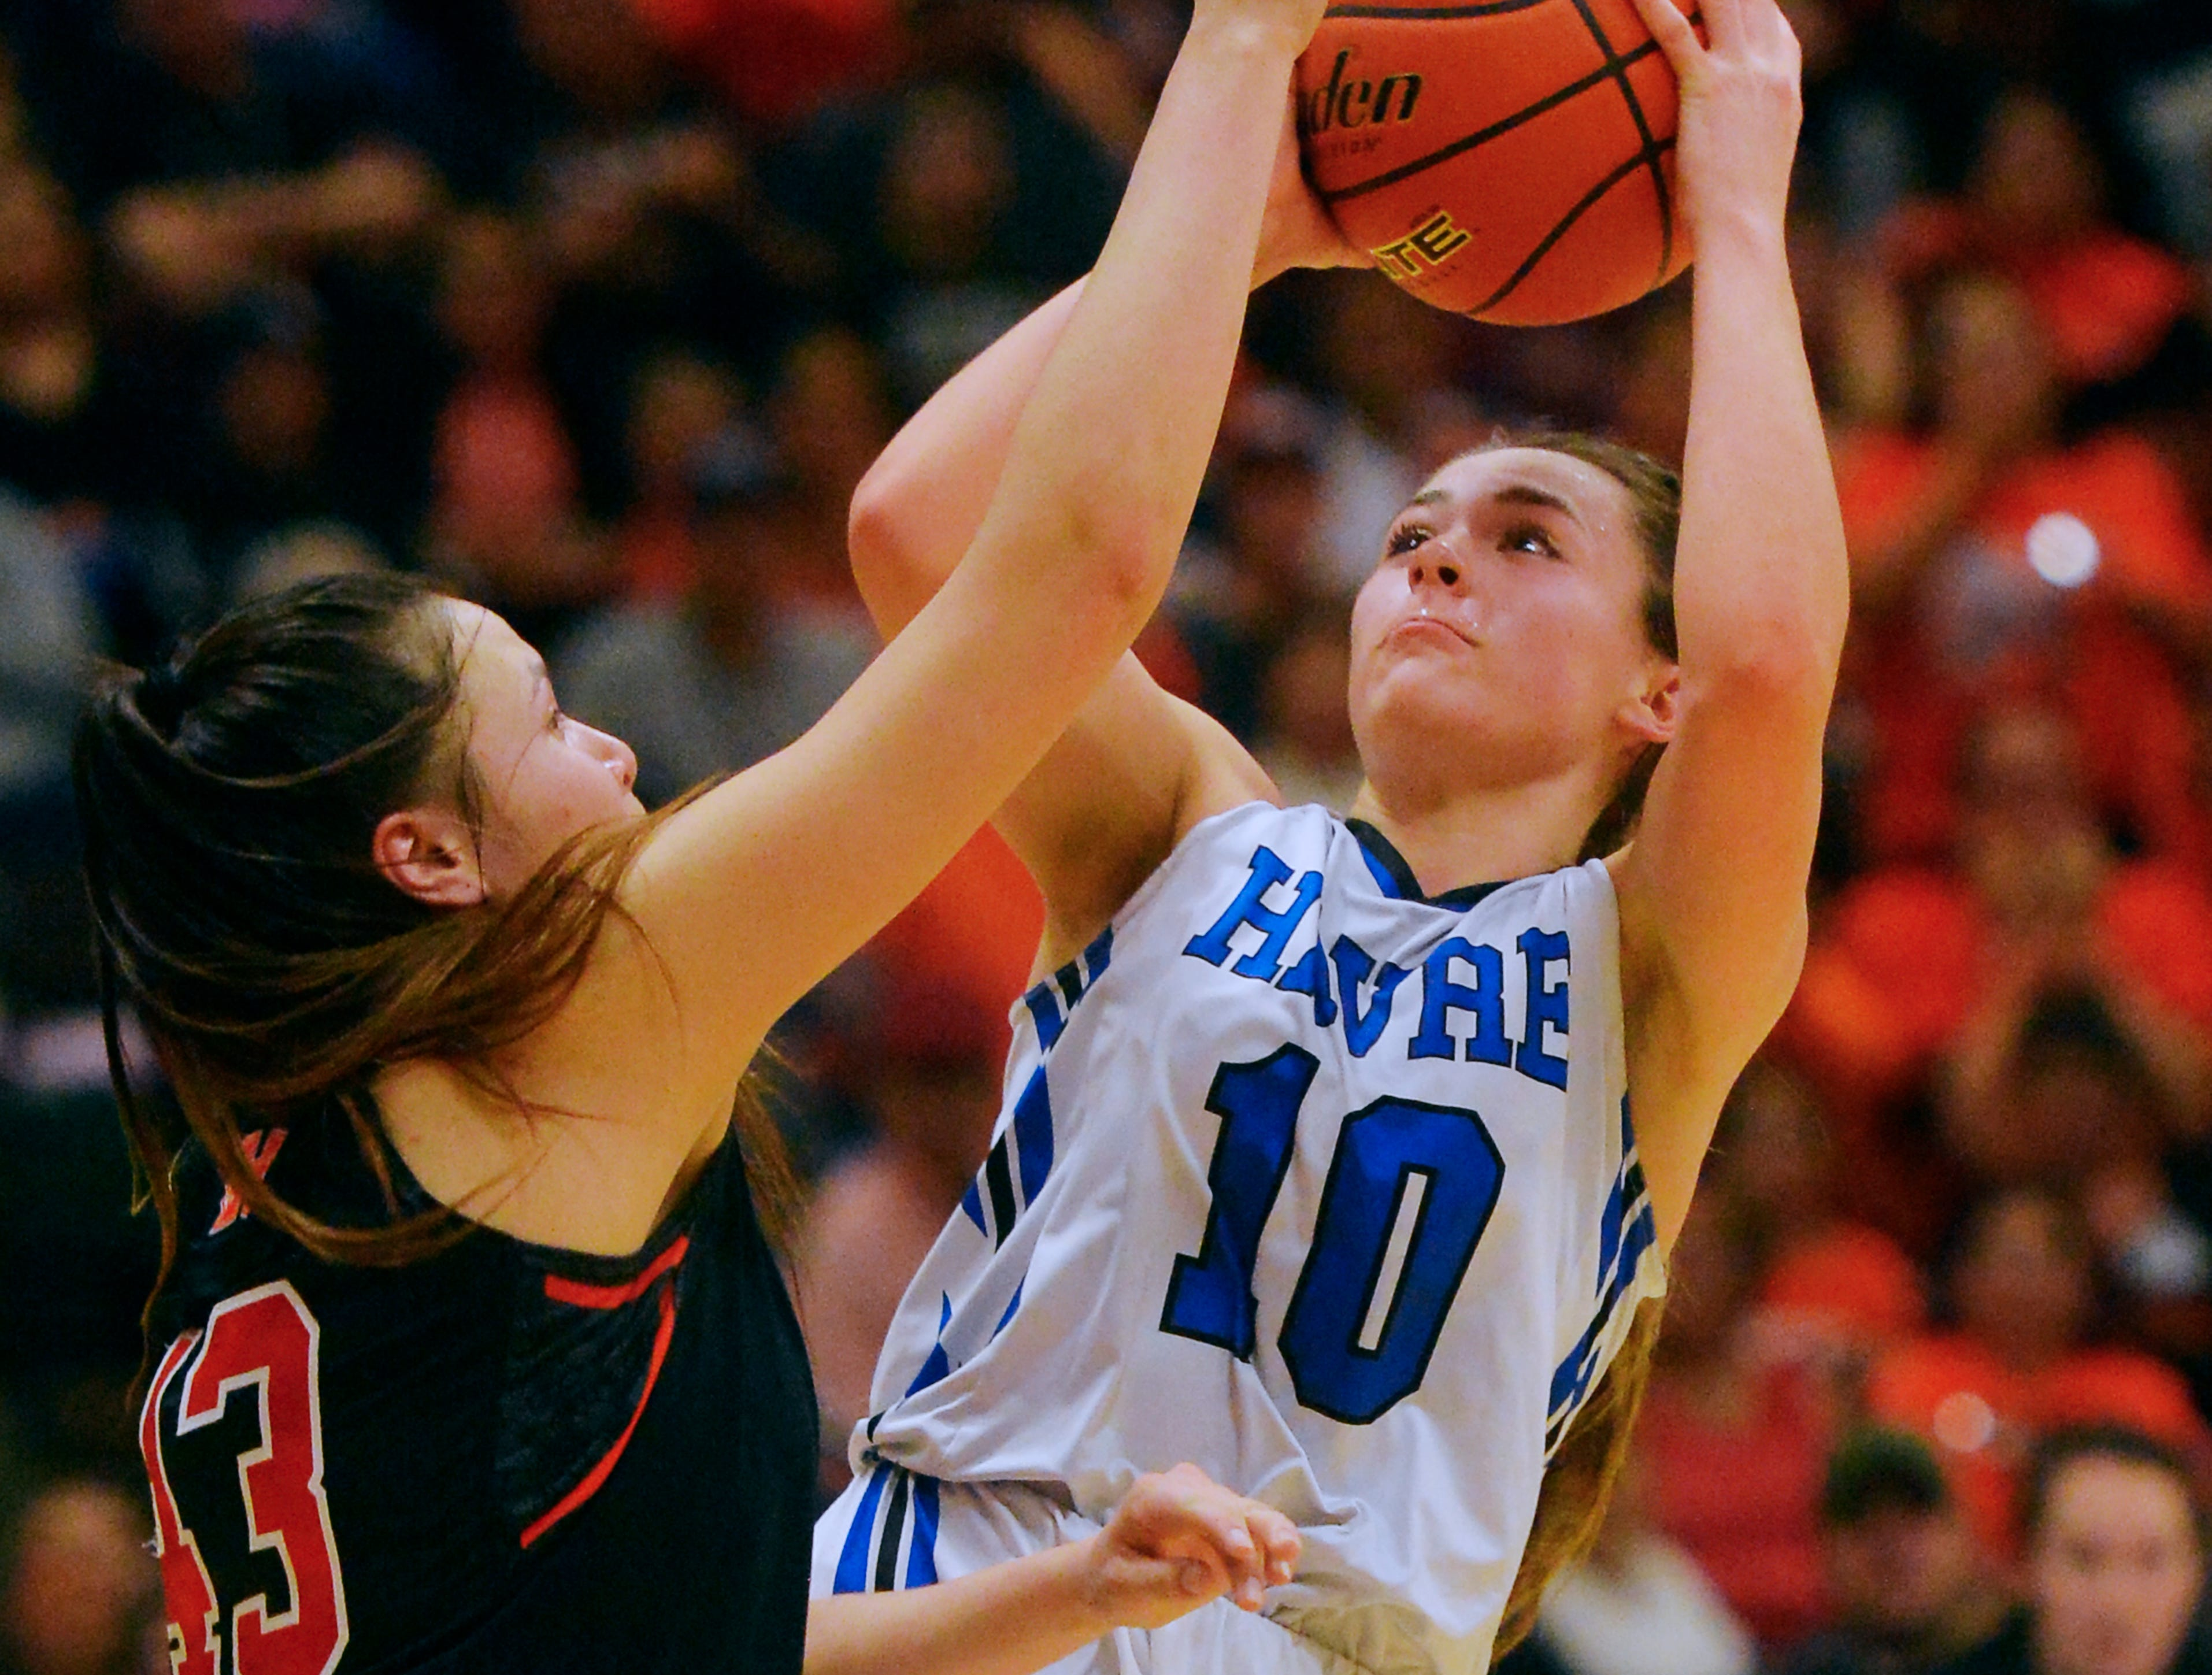 Havre's Kyndall Keller attempts to shoot over Hardin's Marie Five during the title game of the State Class A Basketball Tournament in the Four Seasons Arena, Saturday.